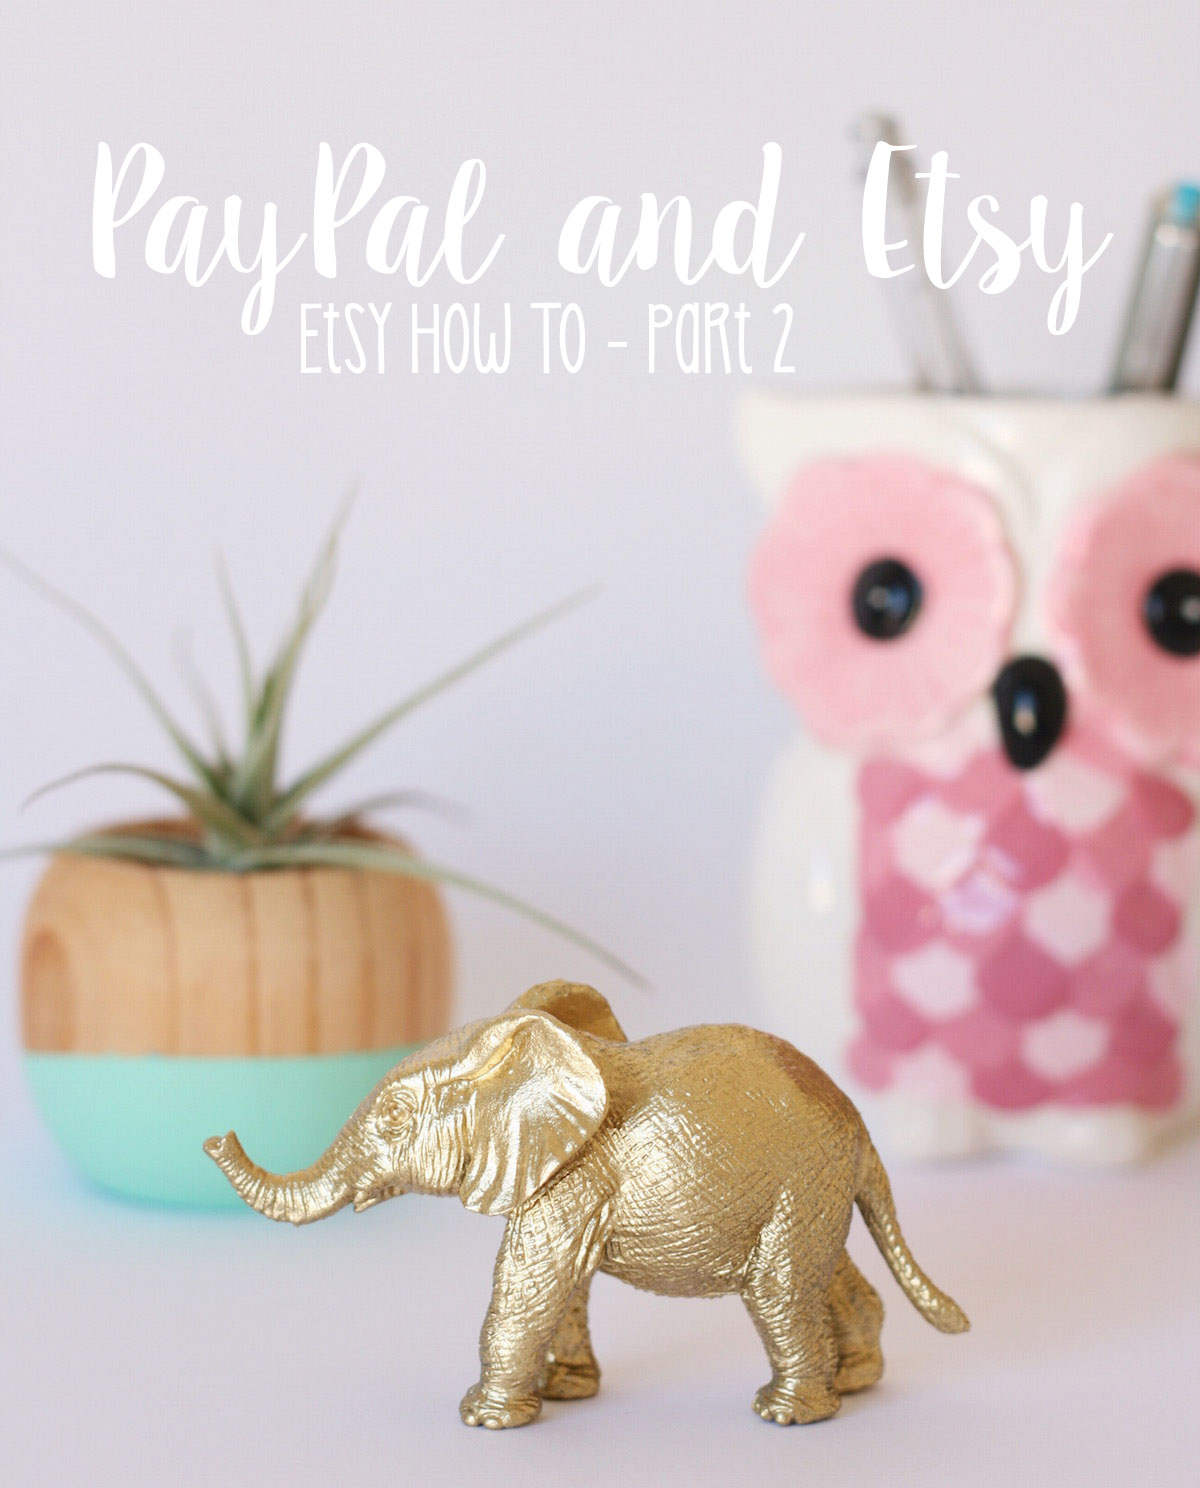 How to link PayPal and Etsy